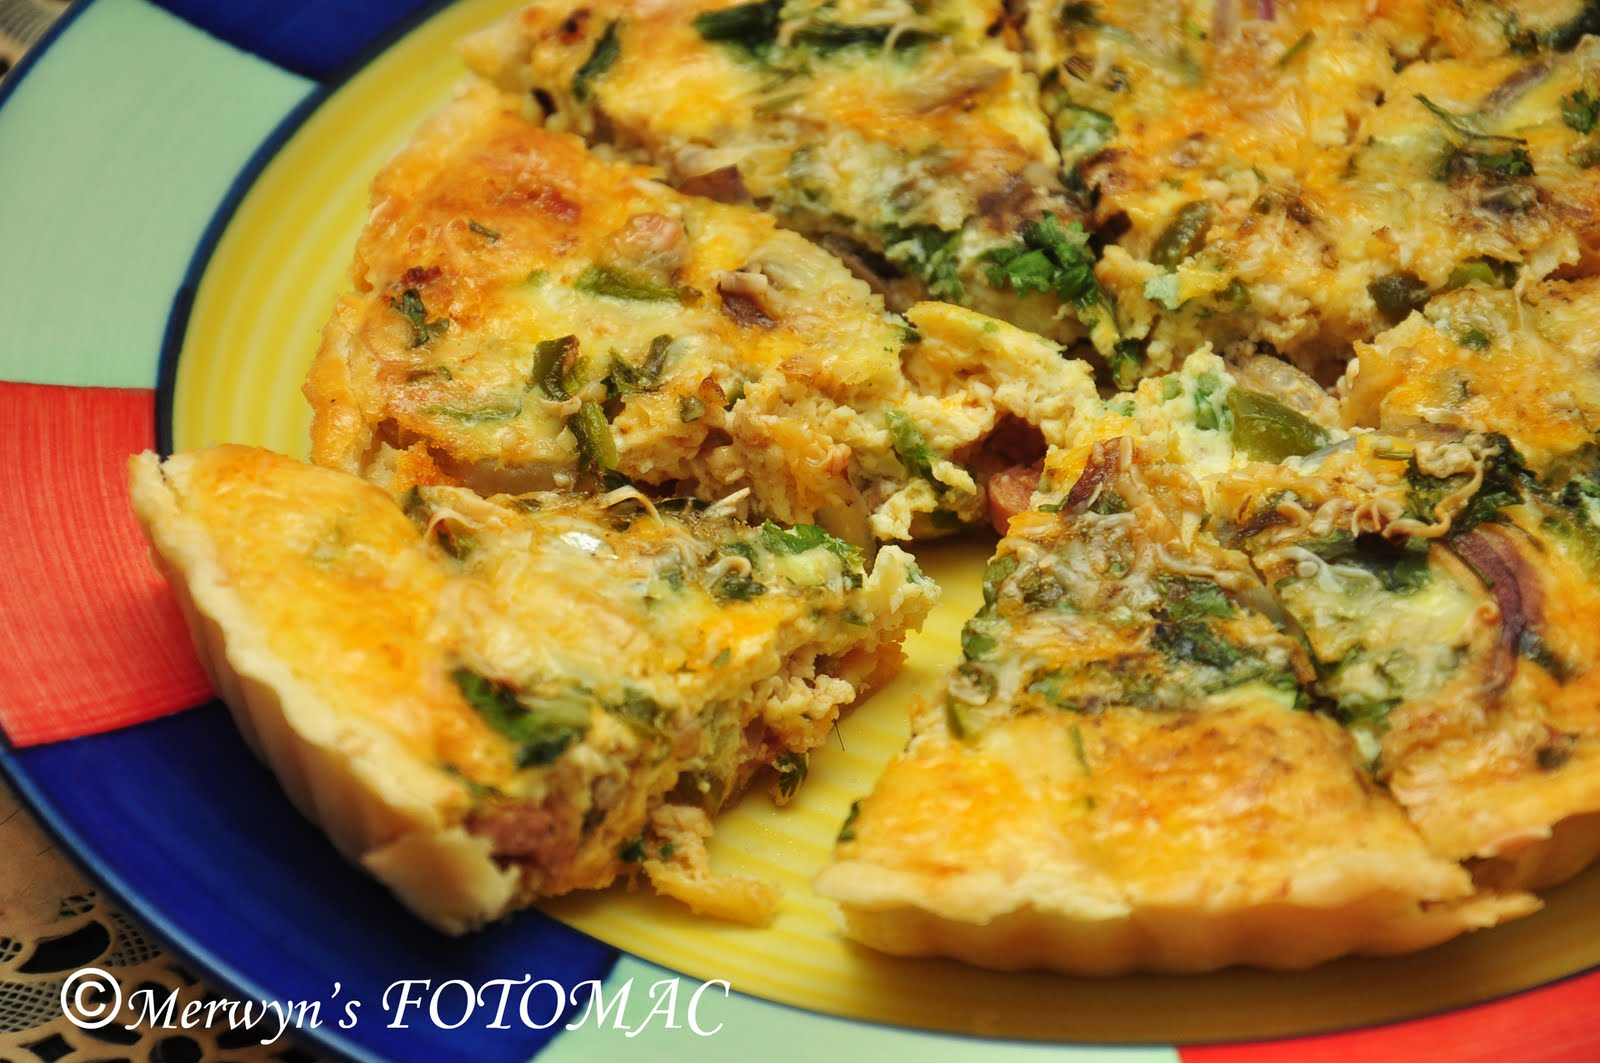 Chicken & Mushroom Quiche - Hilda's Touch Of Spice